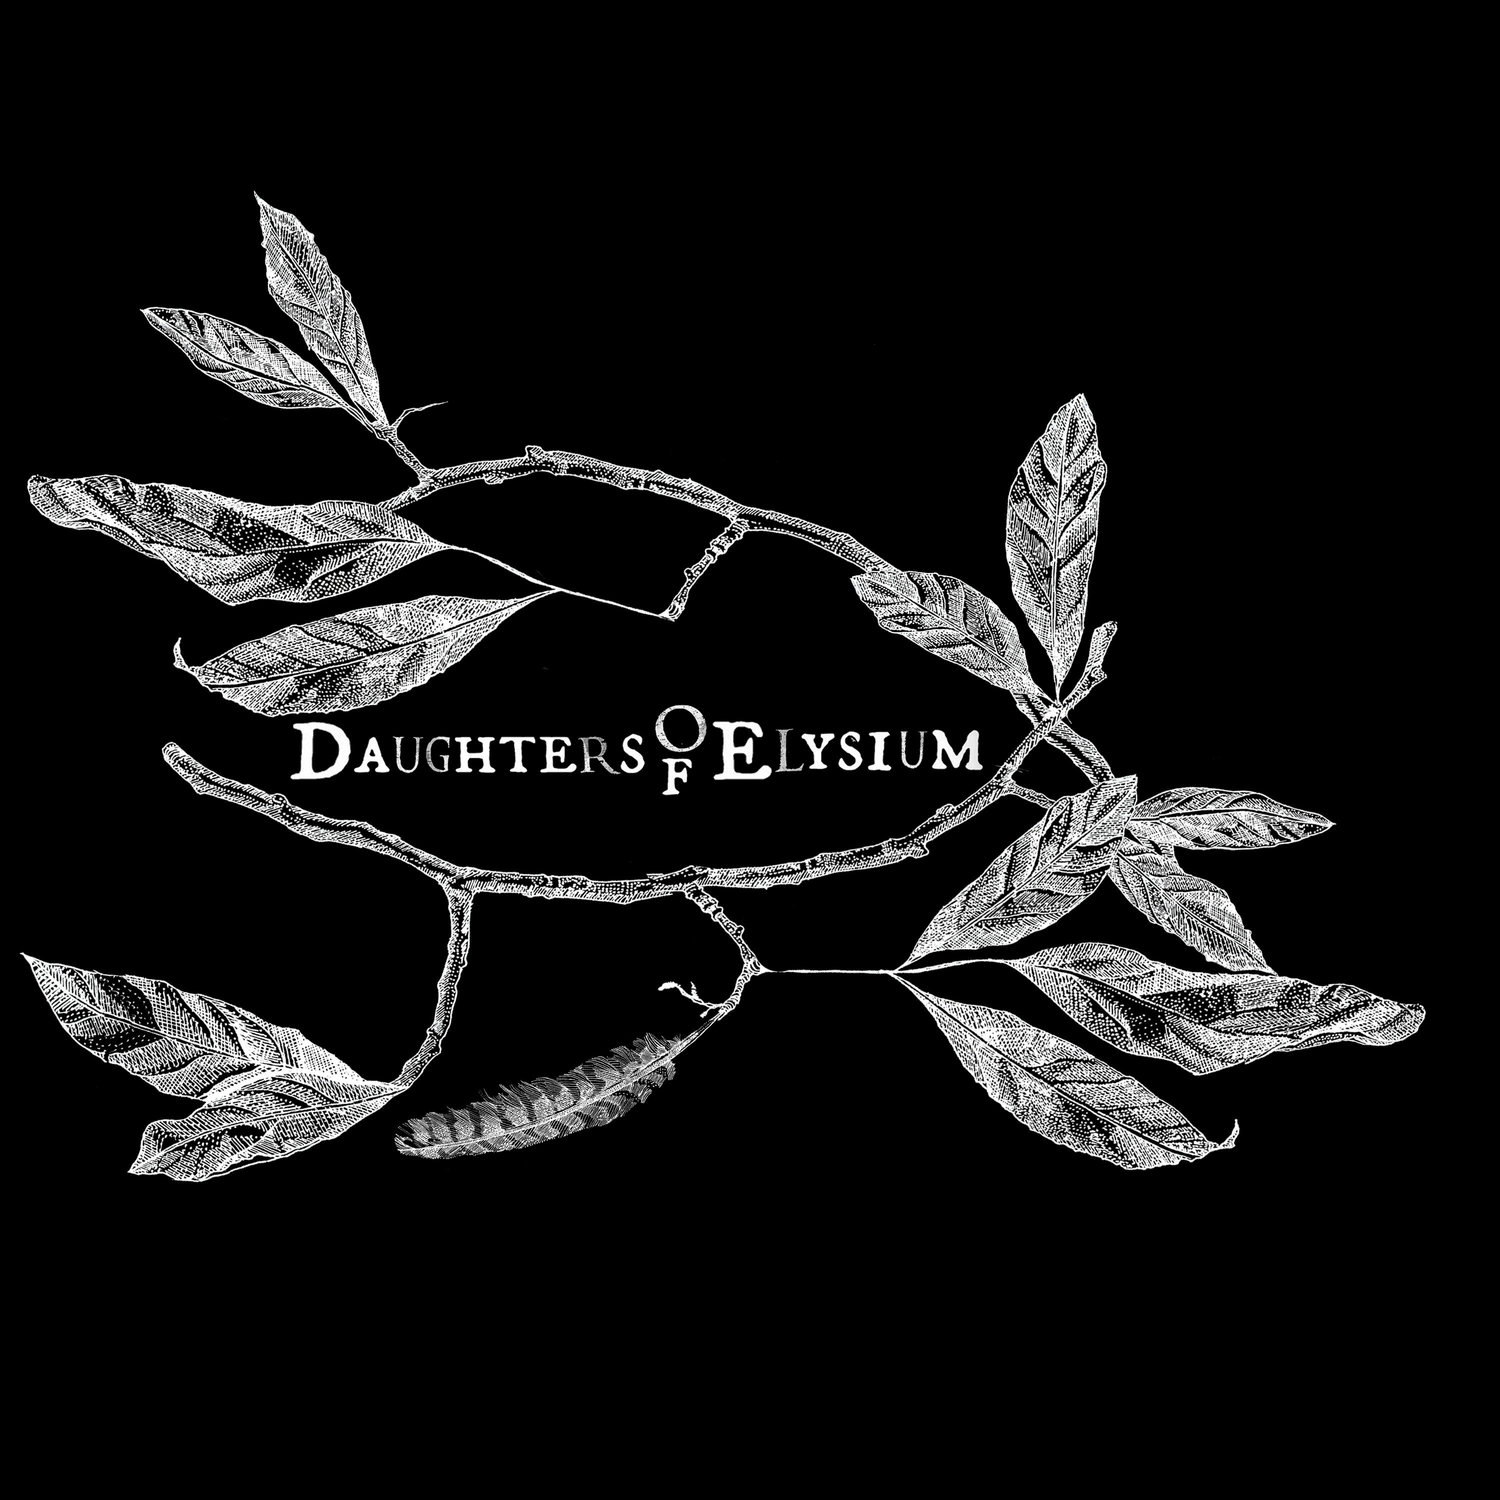 Daughters of Elysium